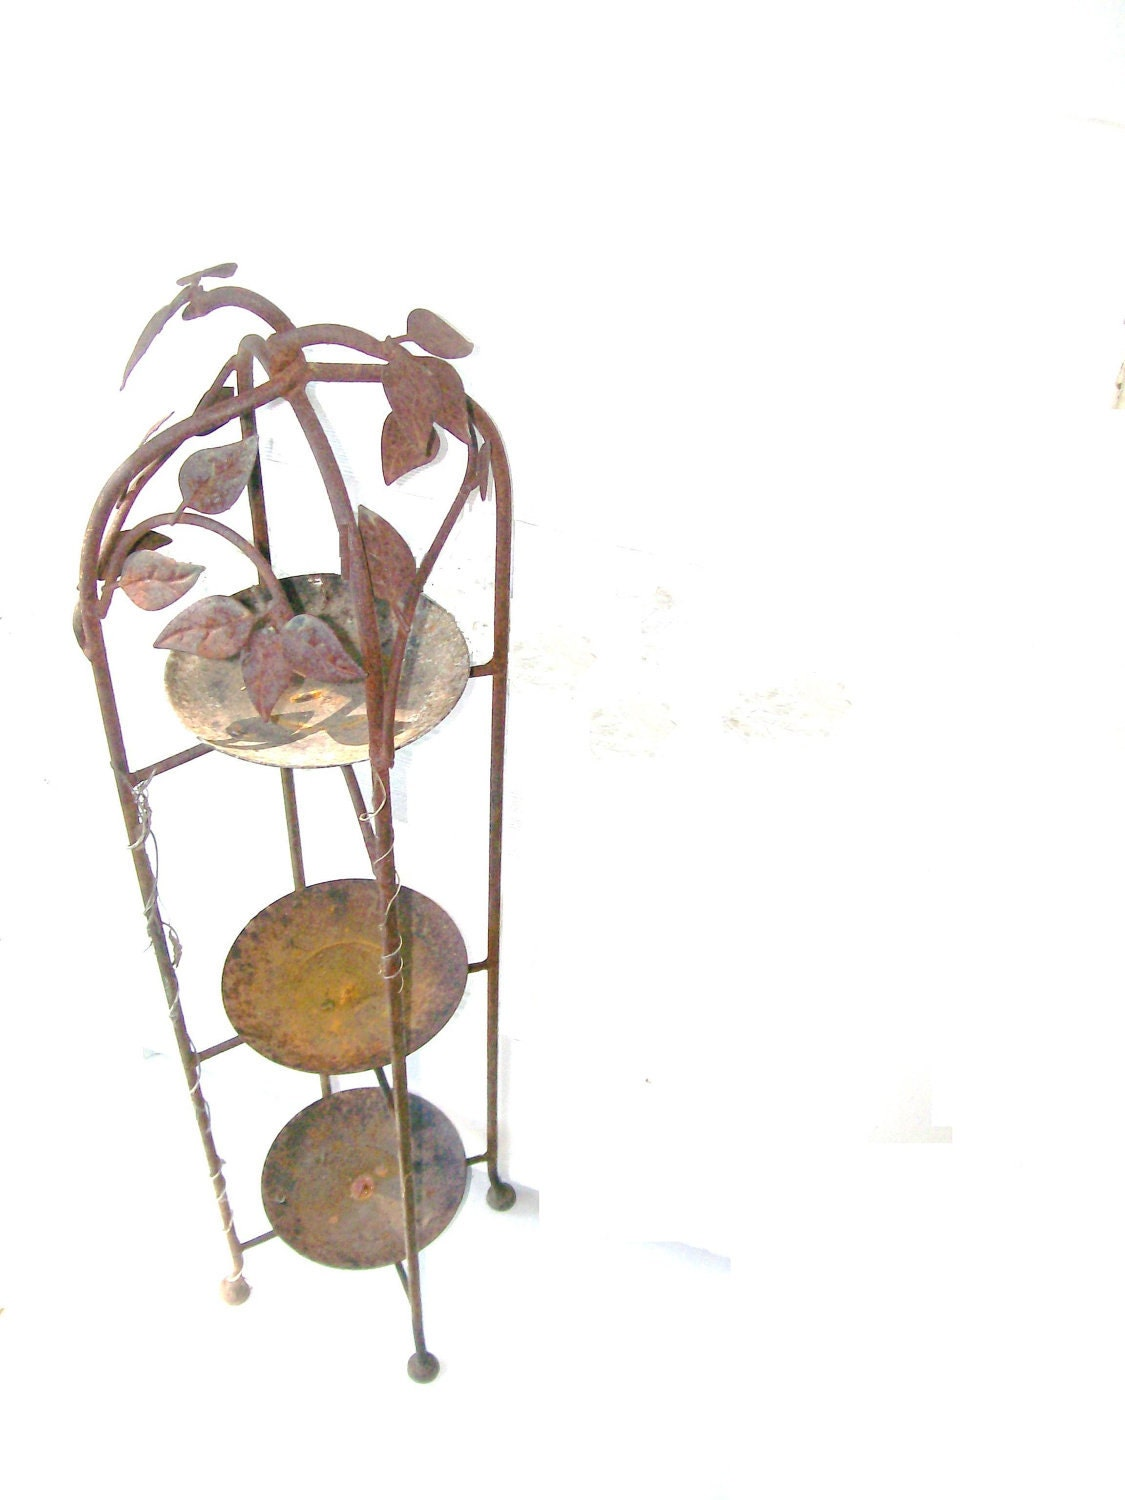 Vintage Rustic Wrought Iron Stand 3 Tiered Ivy Leaf Plant